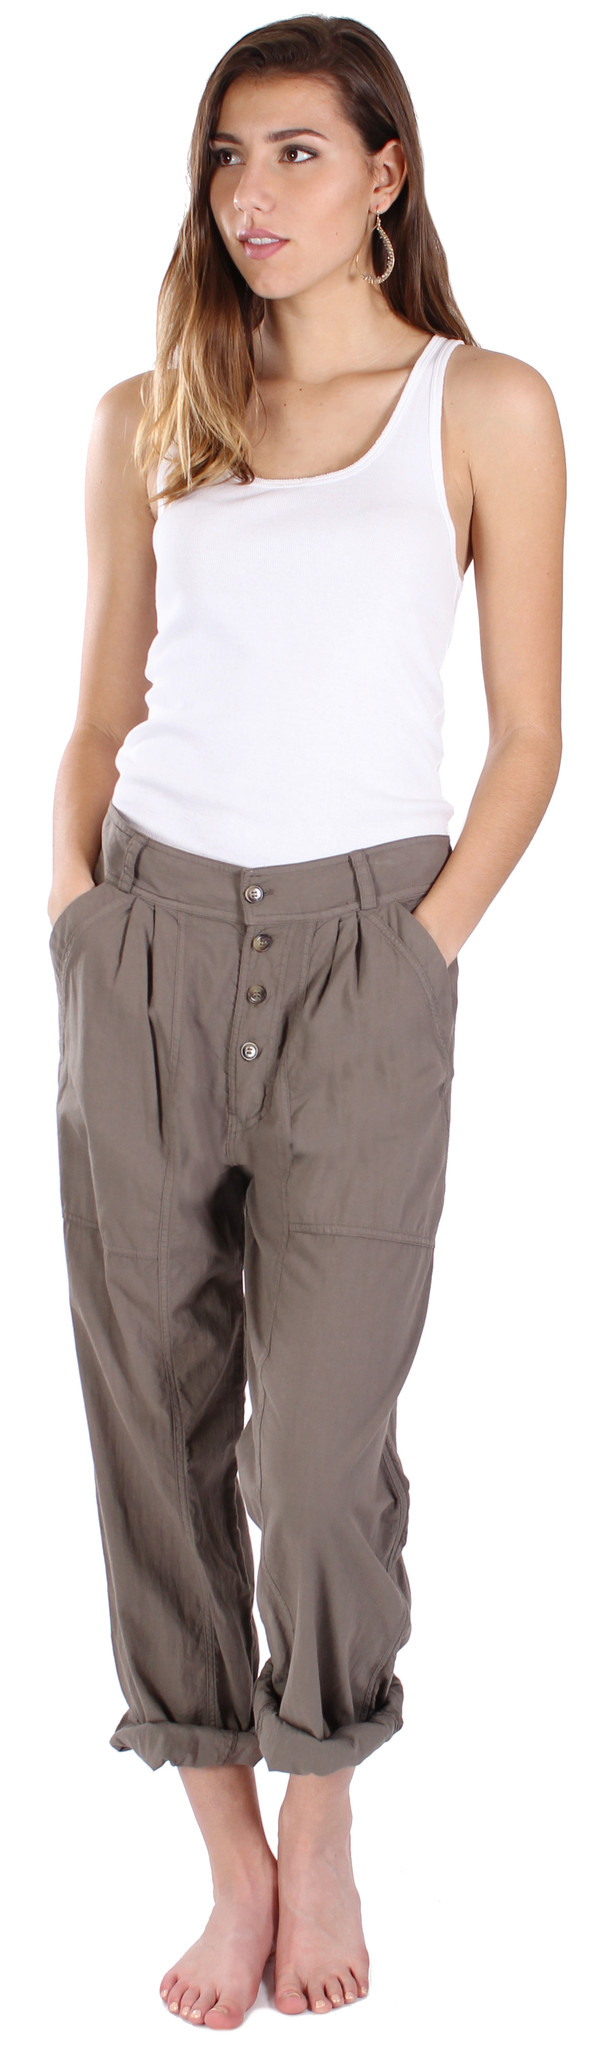 Prairie Underground Band Pant in Olive